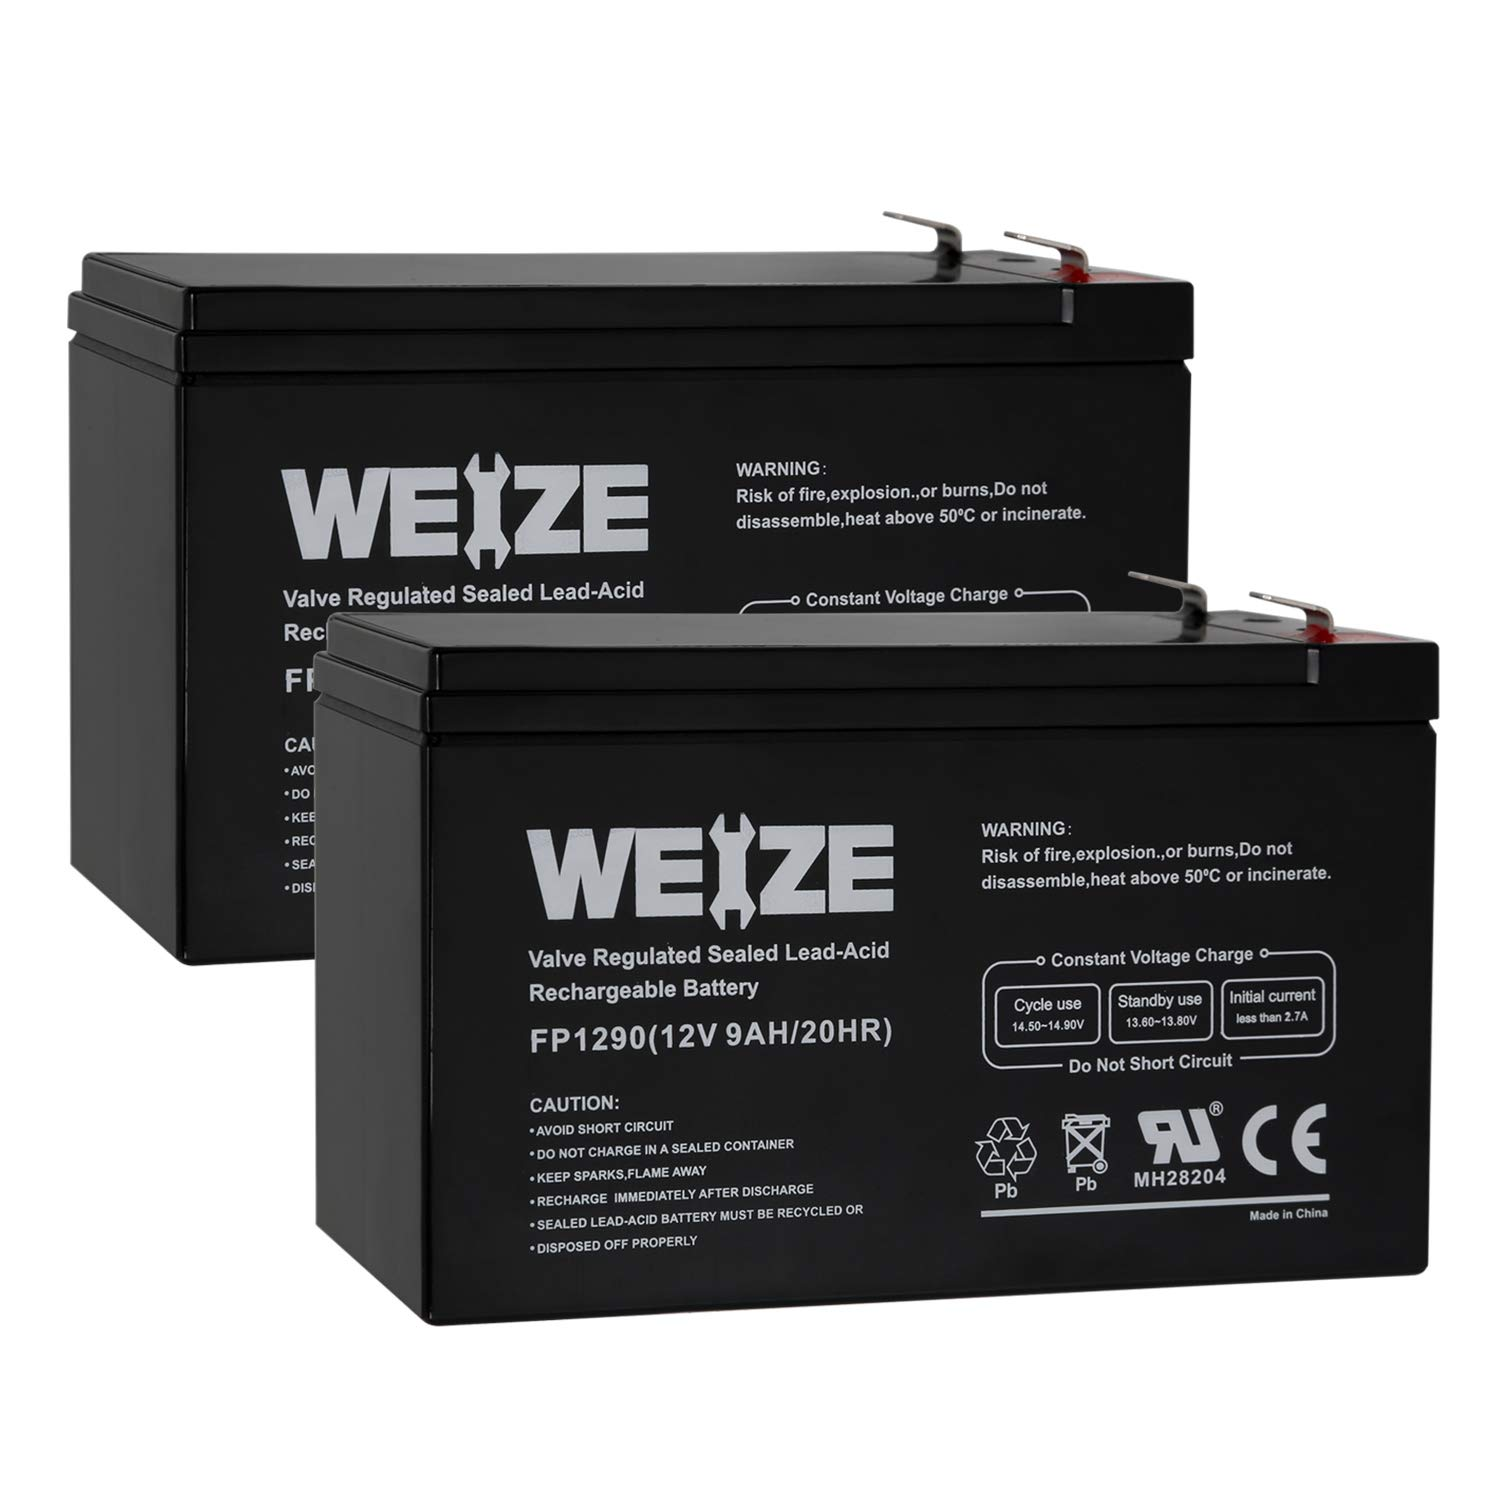 Weize 12V 9AH Rechargeable SLA Battery For APC UPS Computer Backup Power (BX1300LCD), APC Back-UPS NS 1250, 2 PACK